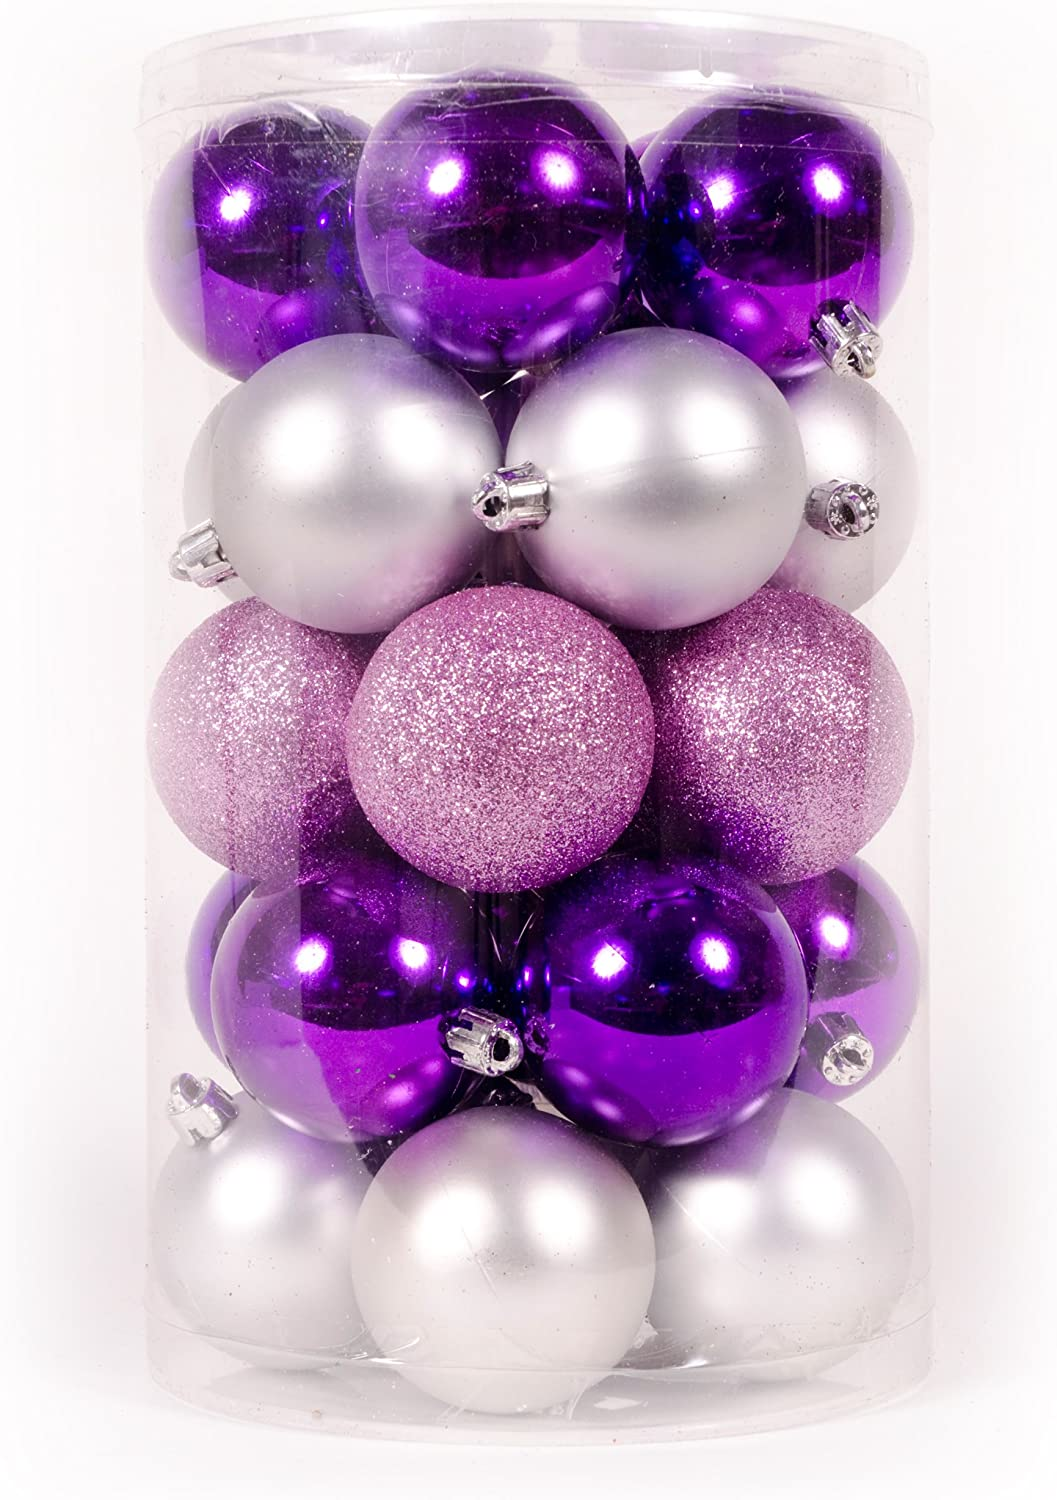 Purple And Silver Christmas Tree Decorations  from images-na.ssl-images-amazon.com